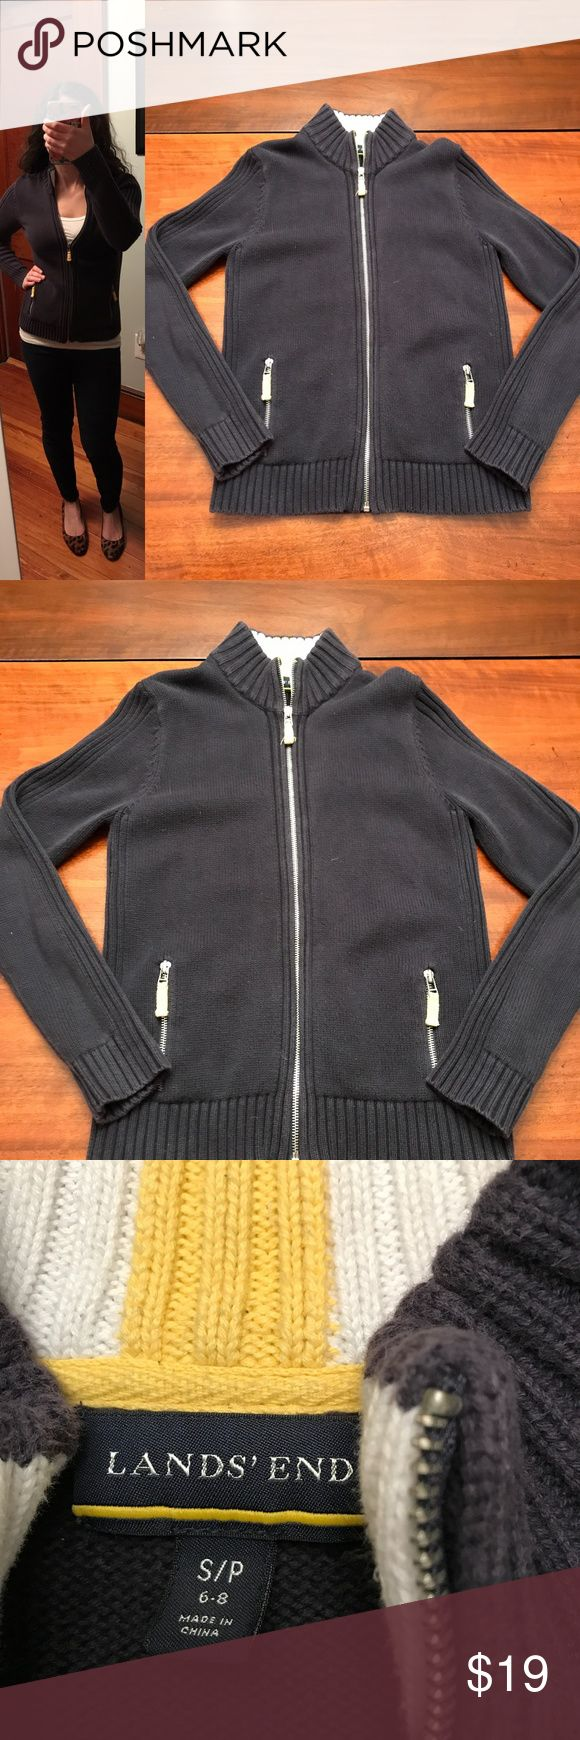 """Land's End Navy Zip Up Cardigan Land's End Navy Zip Up Cardigan, size petite medium. Sweater is in good pre-loved condition, but shows some signs of wear (some pilling/fuzzing throughout). Approx. measurements when laid flat: 17.5"""" pit to pit, 23"""" shoulder to hem, 23"""" sleeve. 100% cotton. Machine wash and dry flat. Lands' End Sweaters Cardigans"""